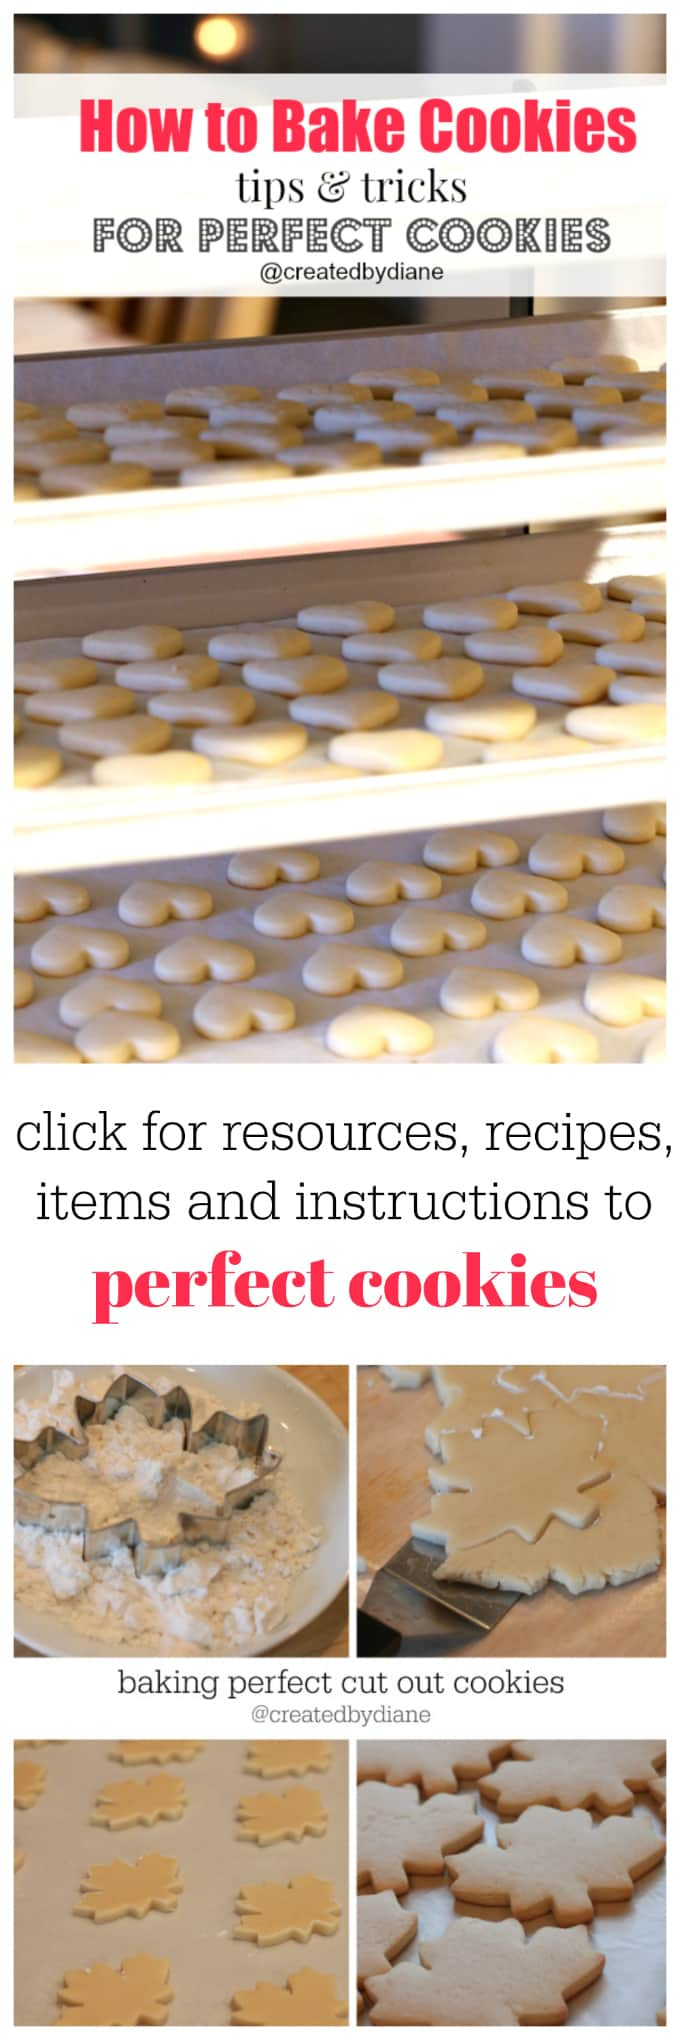 bake perfect cookies each and every time with these instructions and tips @createdbydiane